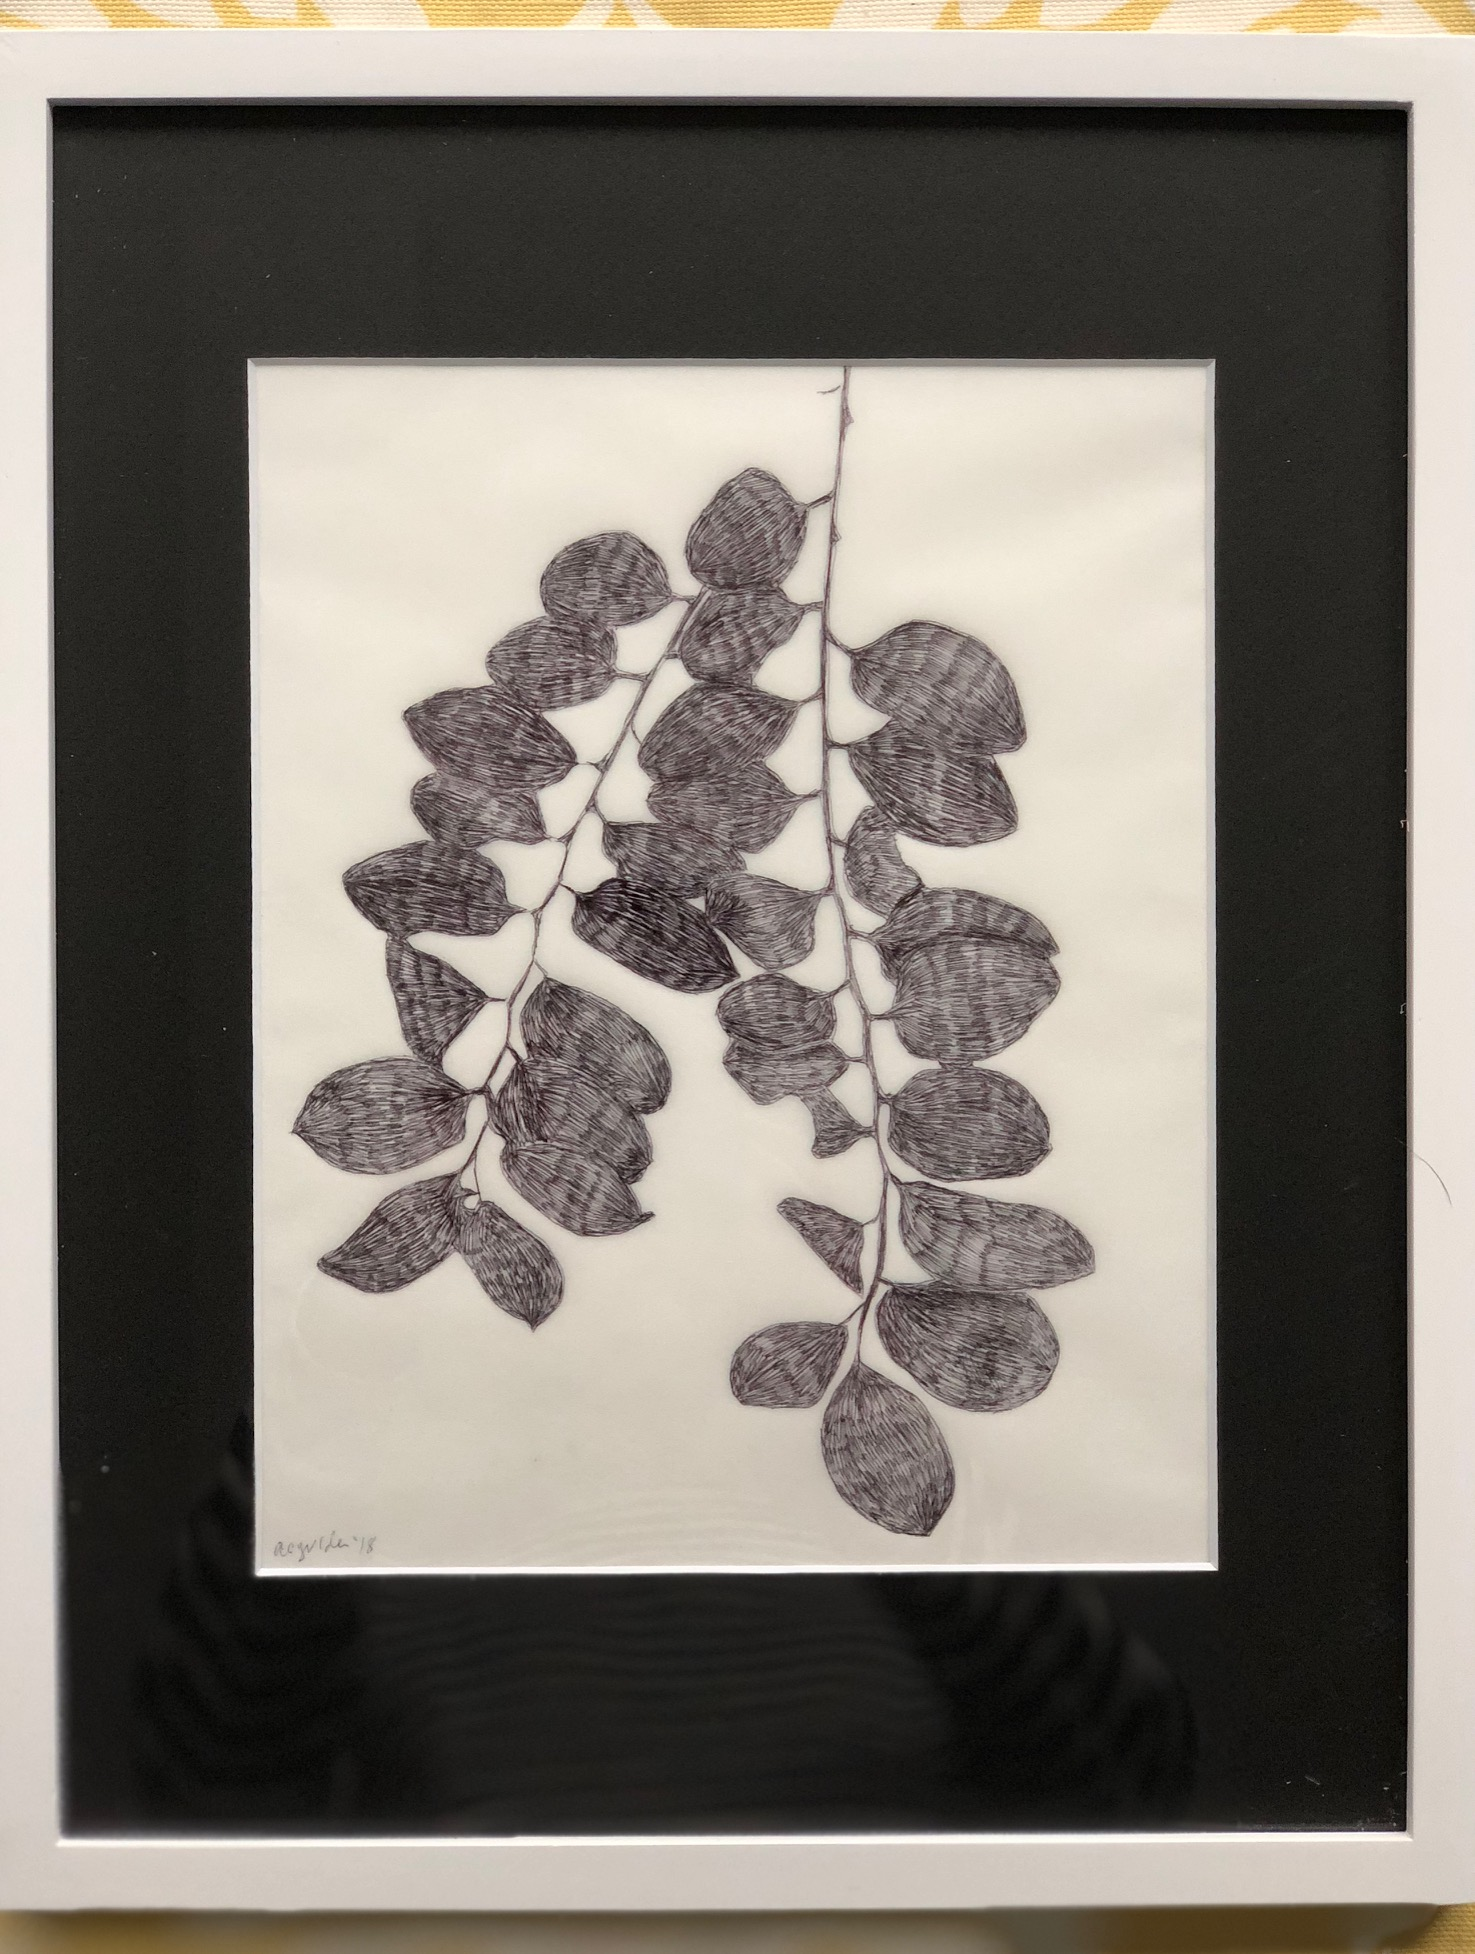 SOLD! Shadow Tracings A